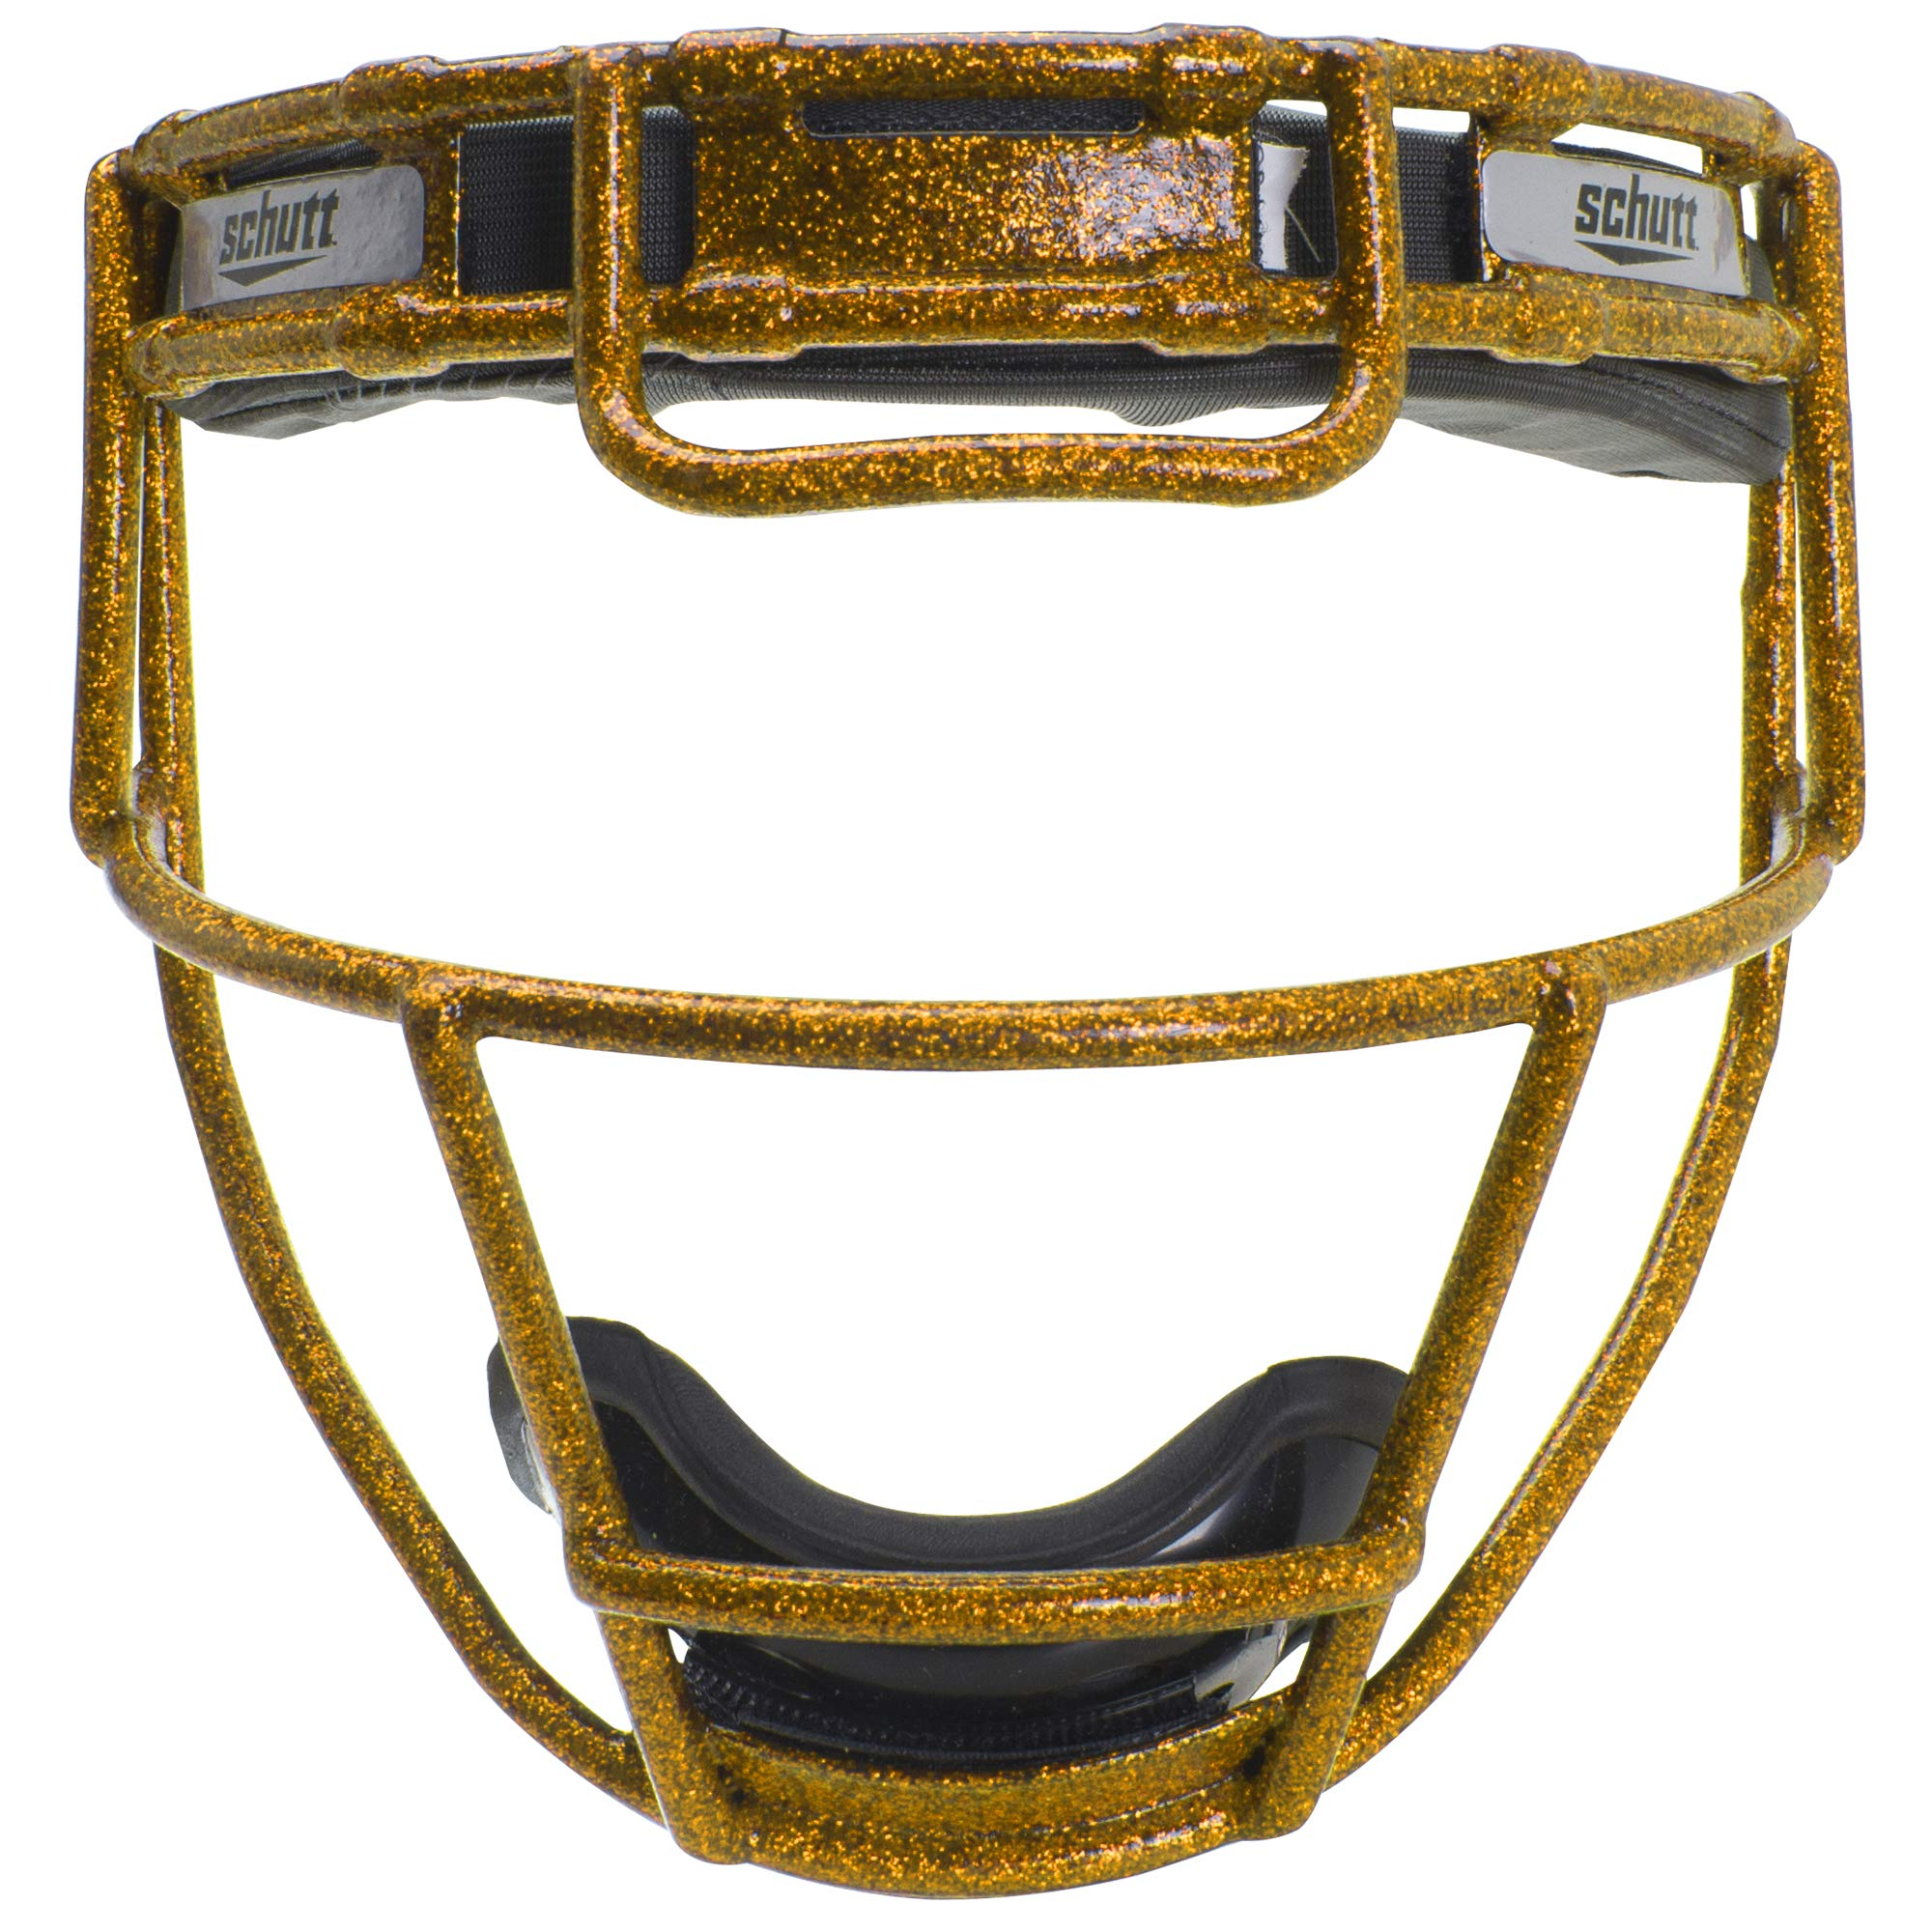 Schutt Sports Softball Fielders Guard, Adult, Diamond Gold by Schutt